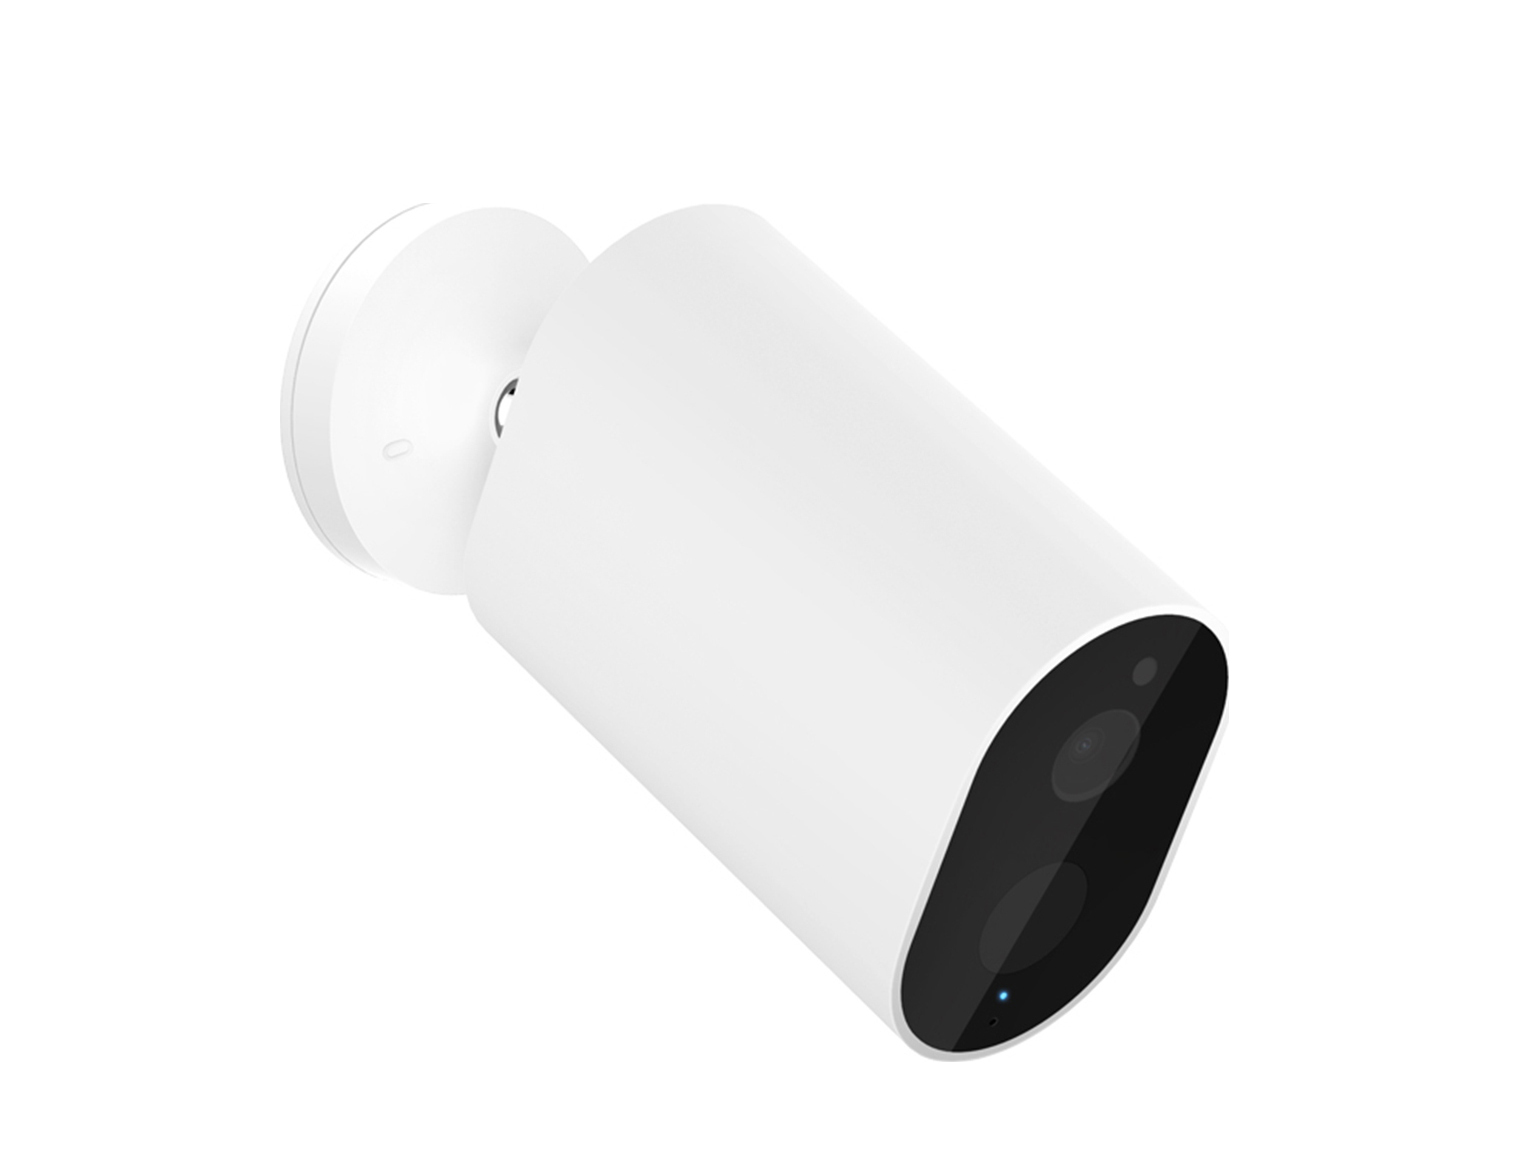 Xiaomi IP Wi-Fi Κάμερα 1080p Αδιάβροχη(Camera CMSXJ11A + Gateway CMSXJ11AG Mijia EC2 Wireless Home Security Camera Set (2 χρόνια εγγύηση)